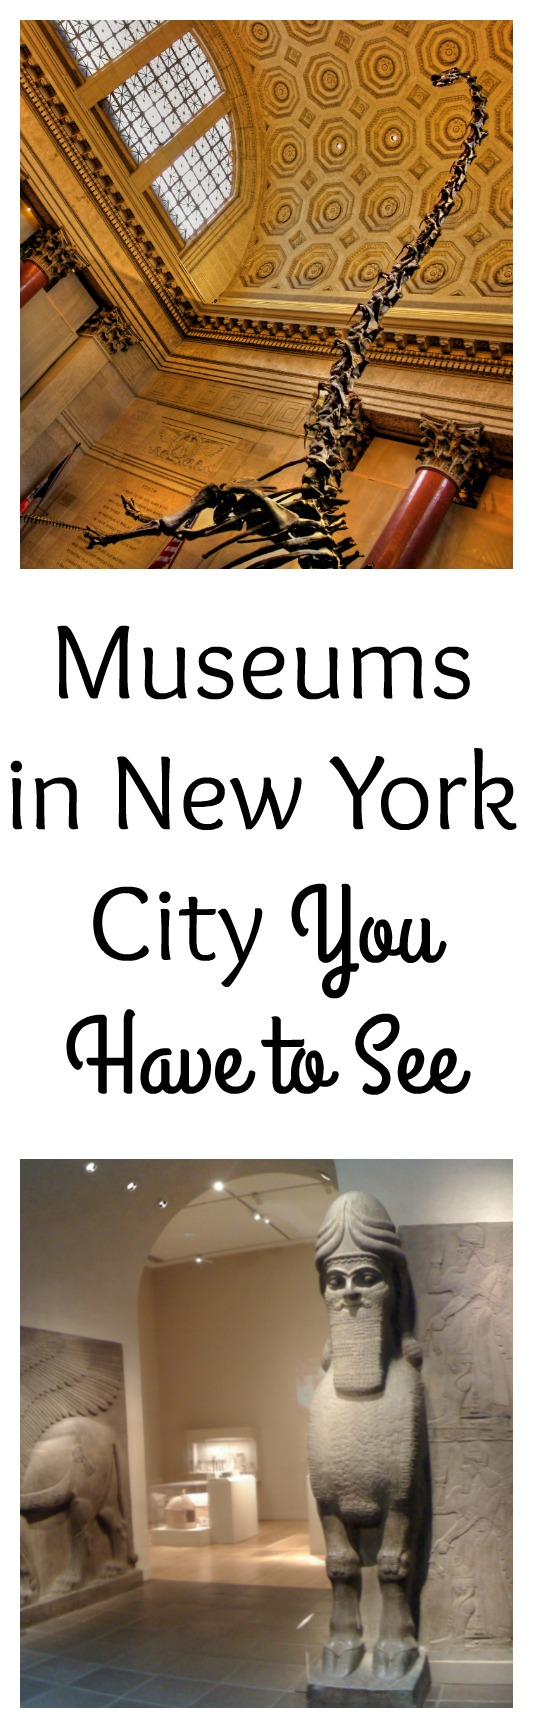 Museums to see in new york city eat sleep travel repeat for Whats there to do in new york